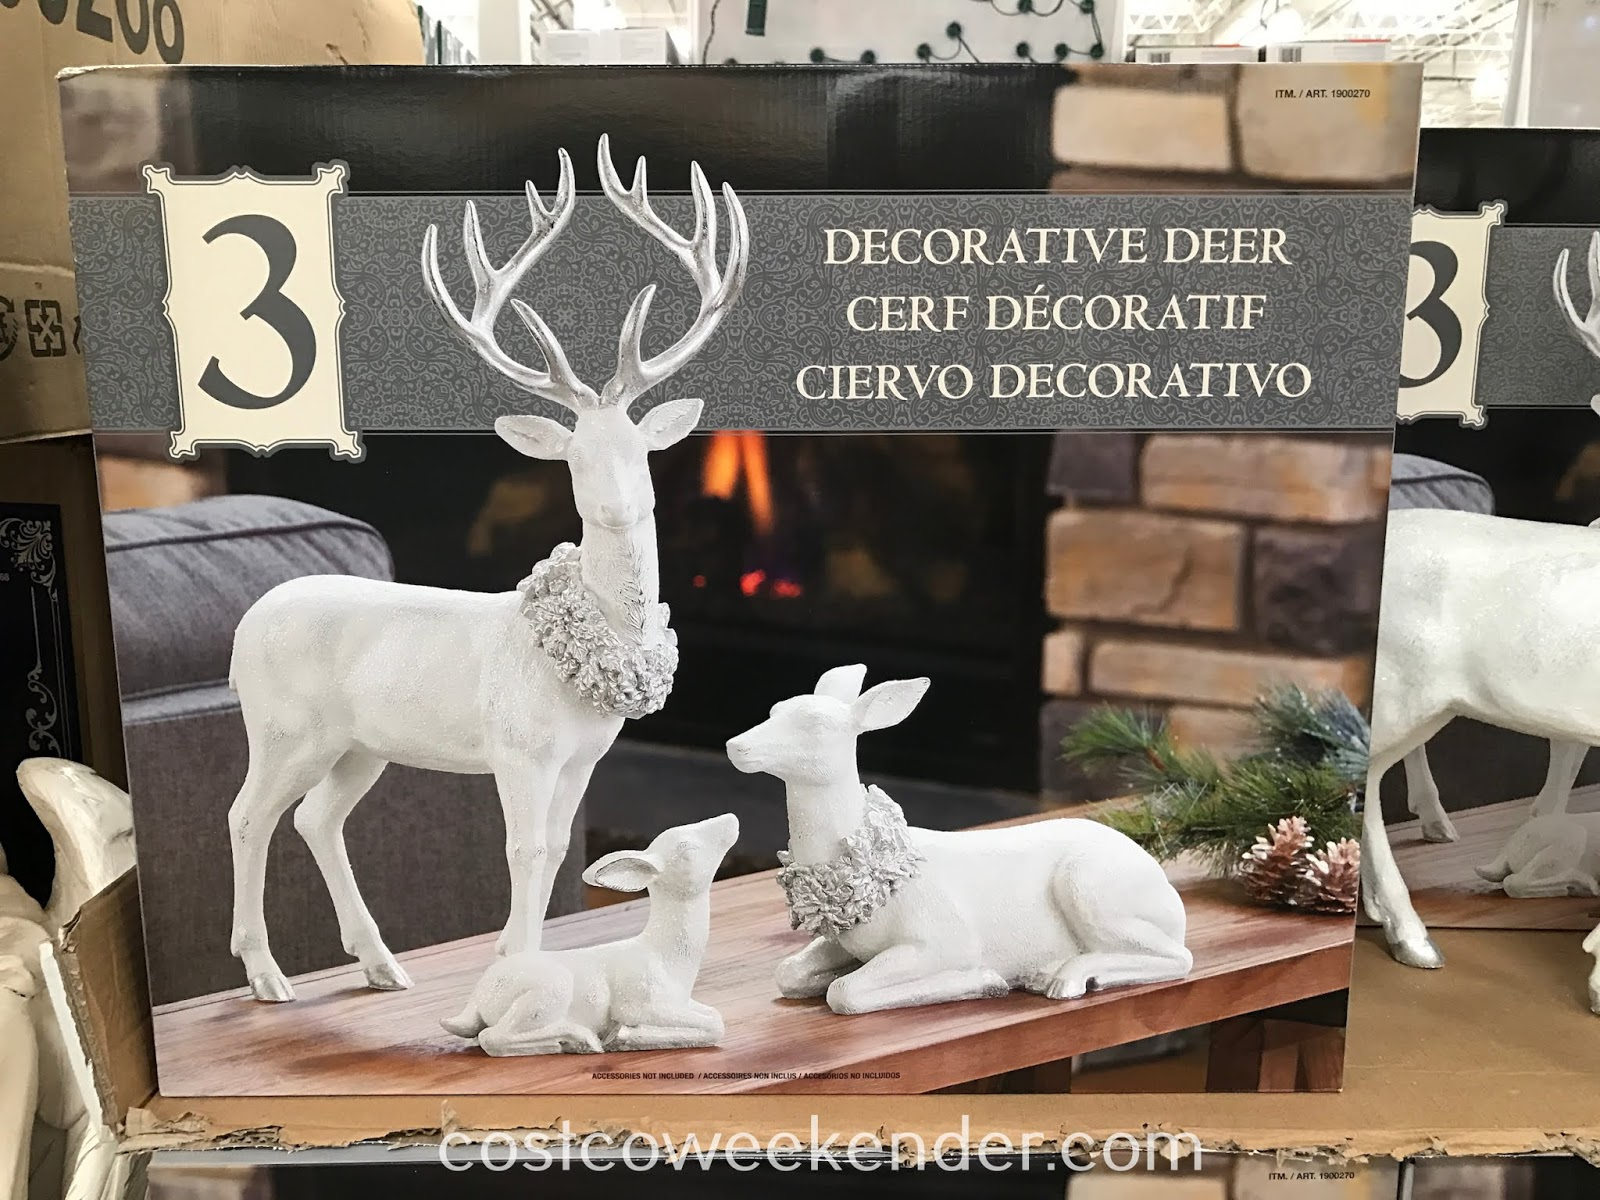 Costco 1900270 - Table Top Decorative Deer Family: an ideal addition to your Christmas decorations